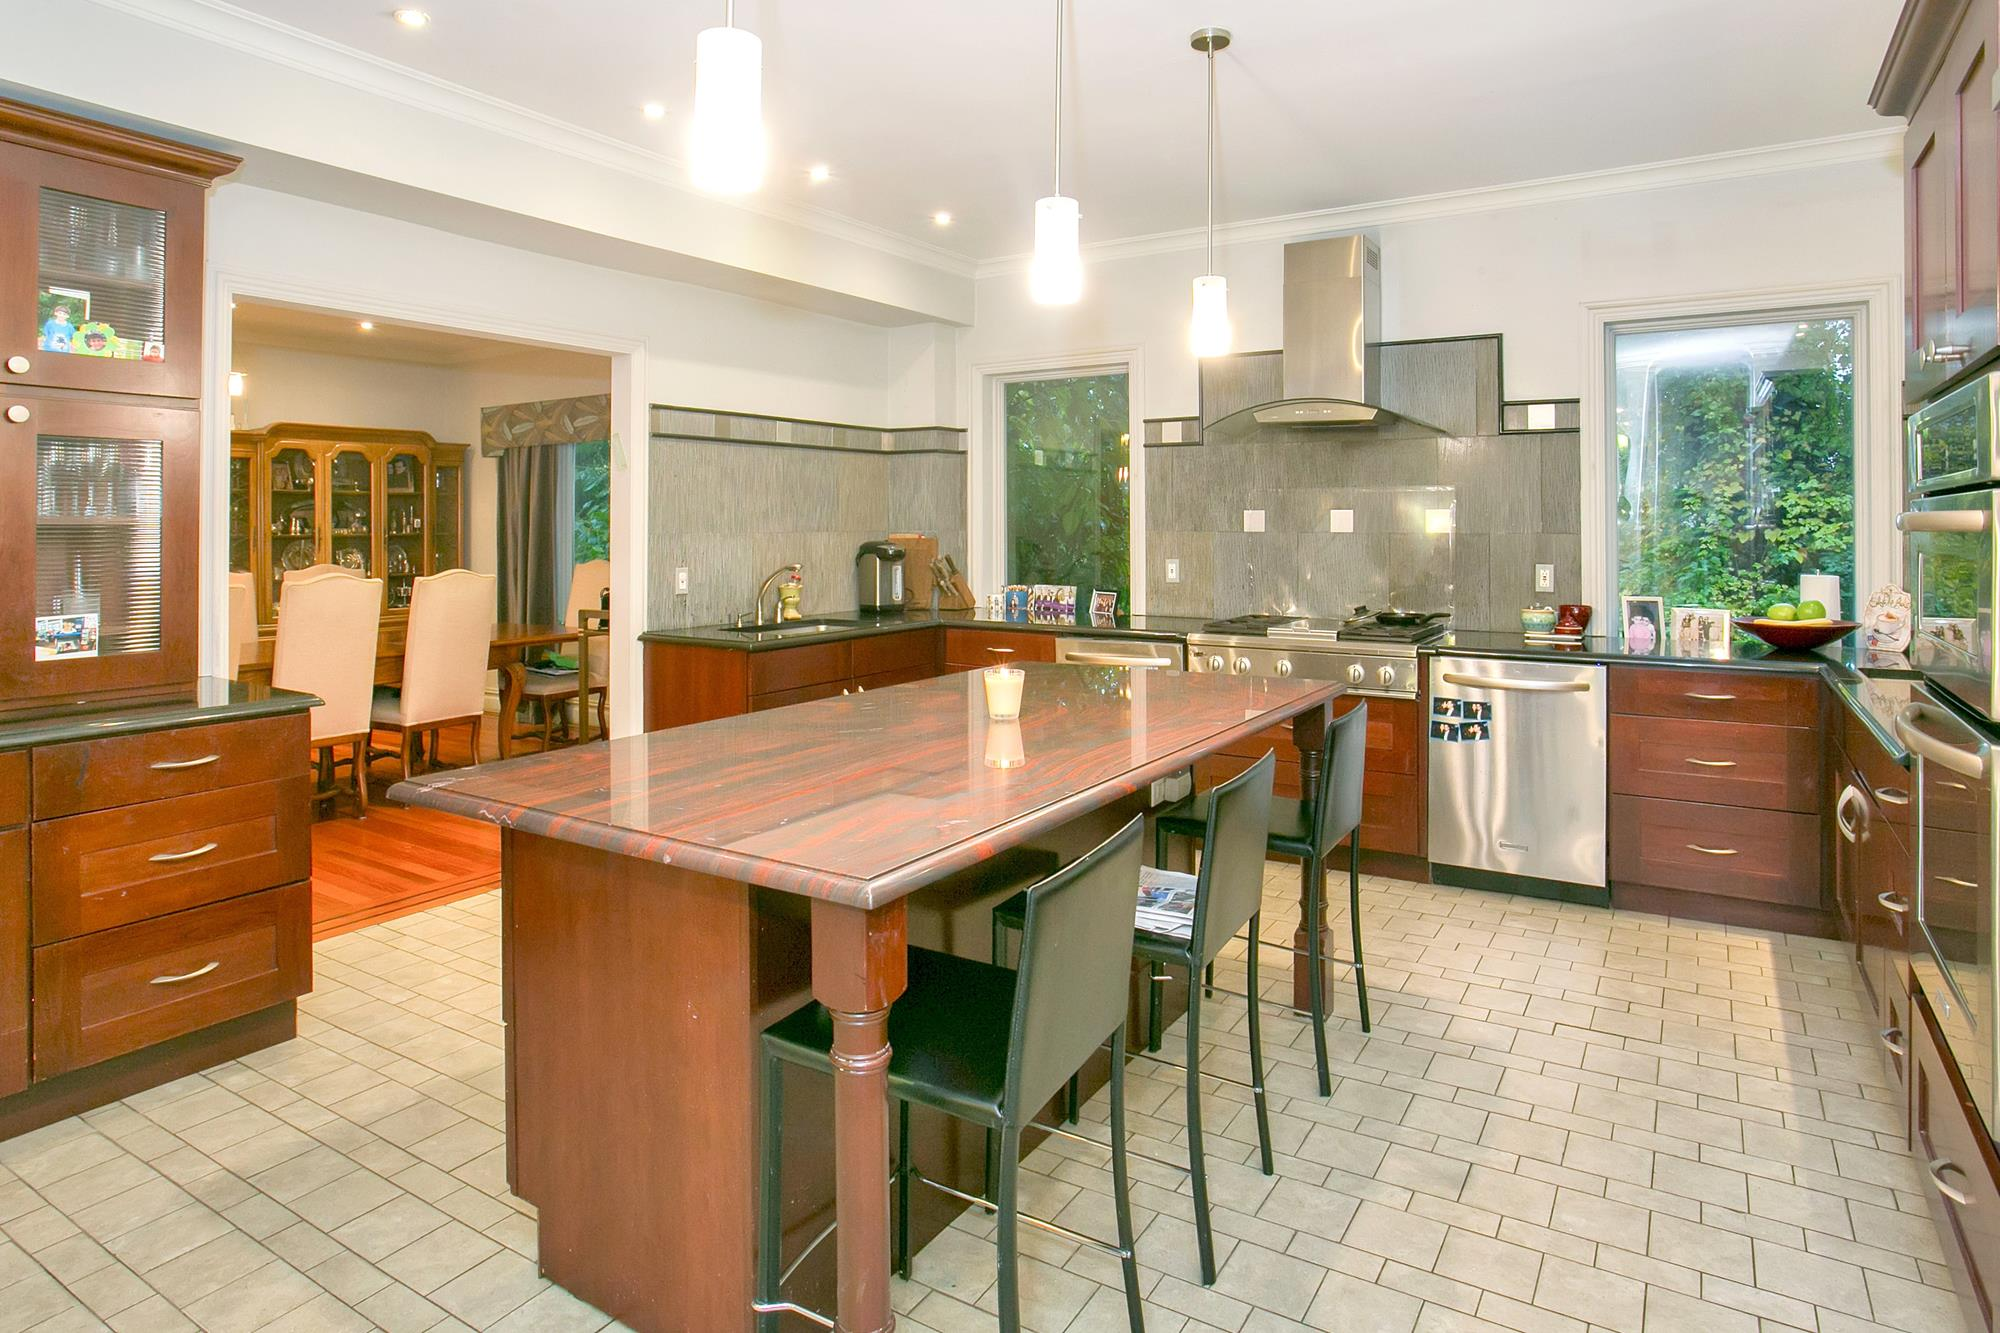 ESTATE AREA: Spacious 6-Bd. Brick House w/ Patio and Level, Grassy Yard in Private Enclave